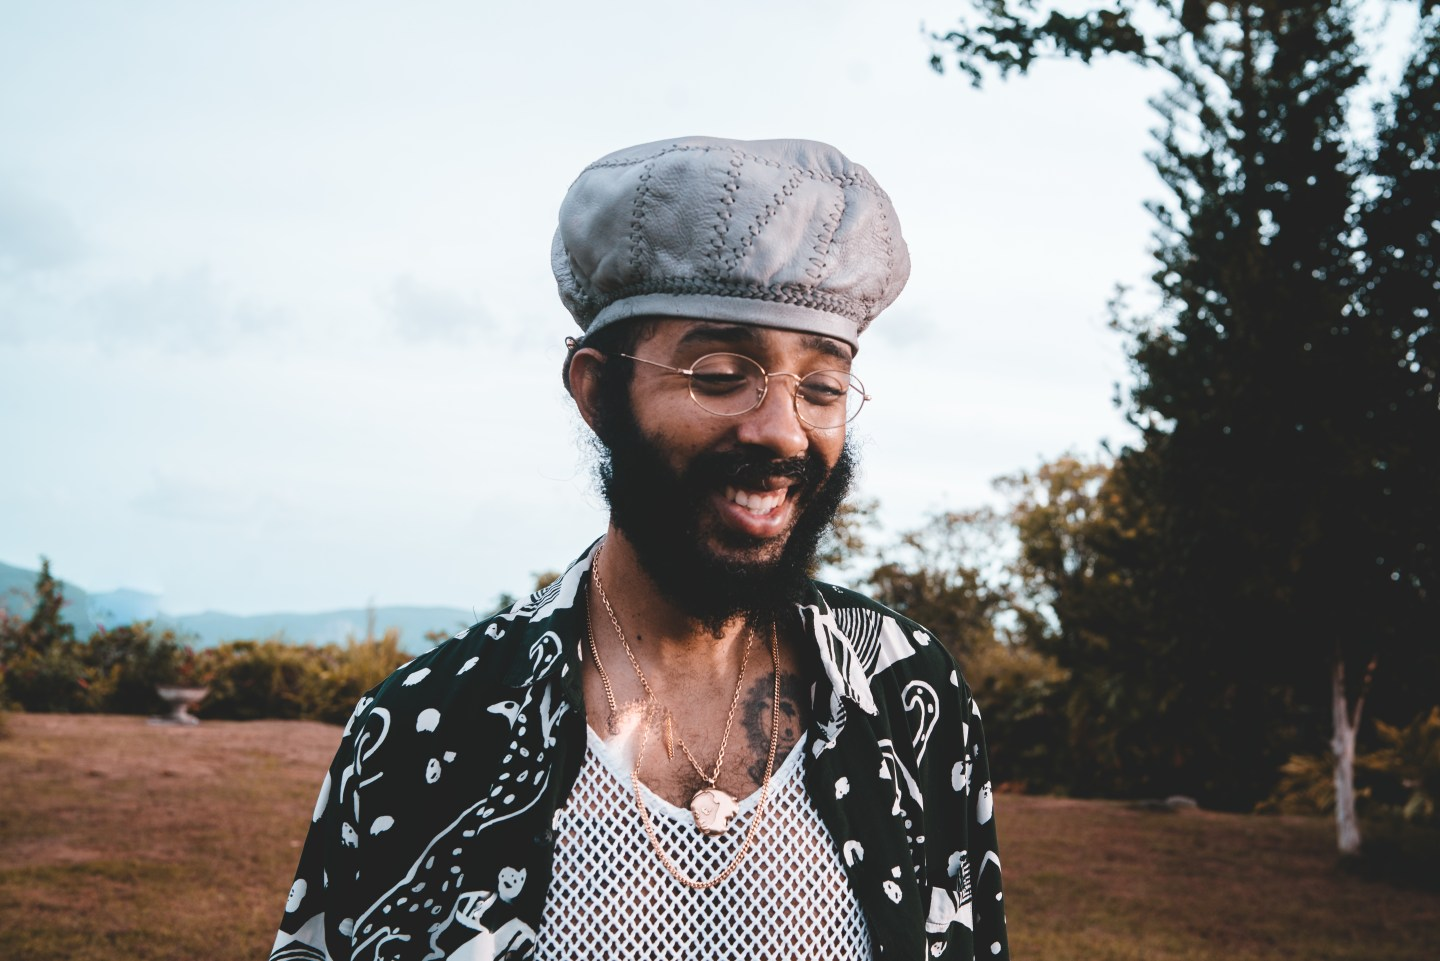 15 years in, Protoje is still sleepless and inspired